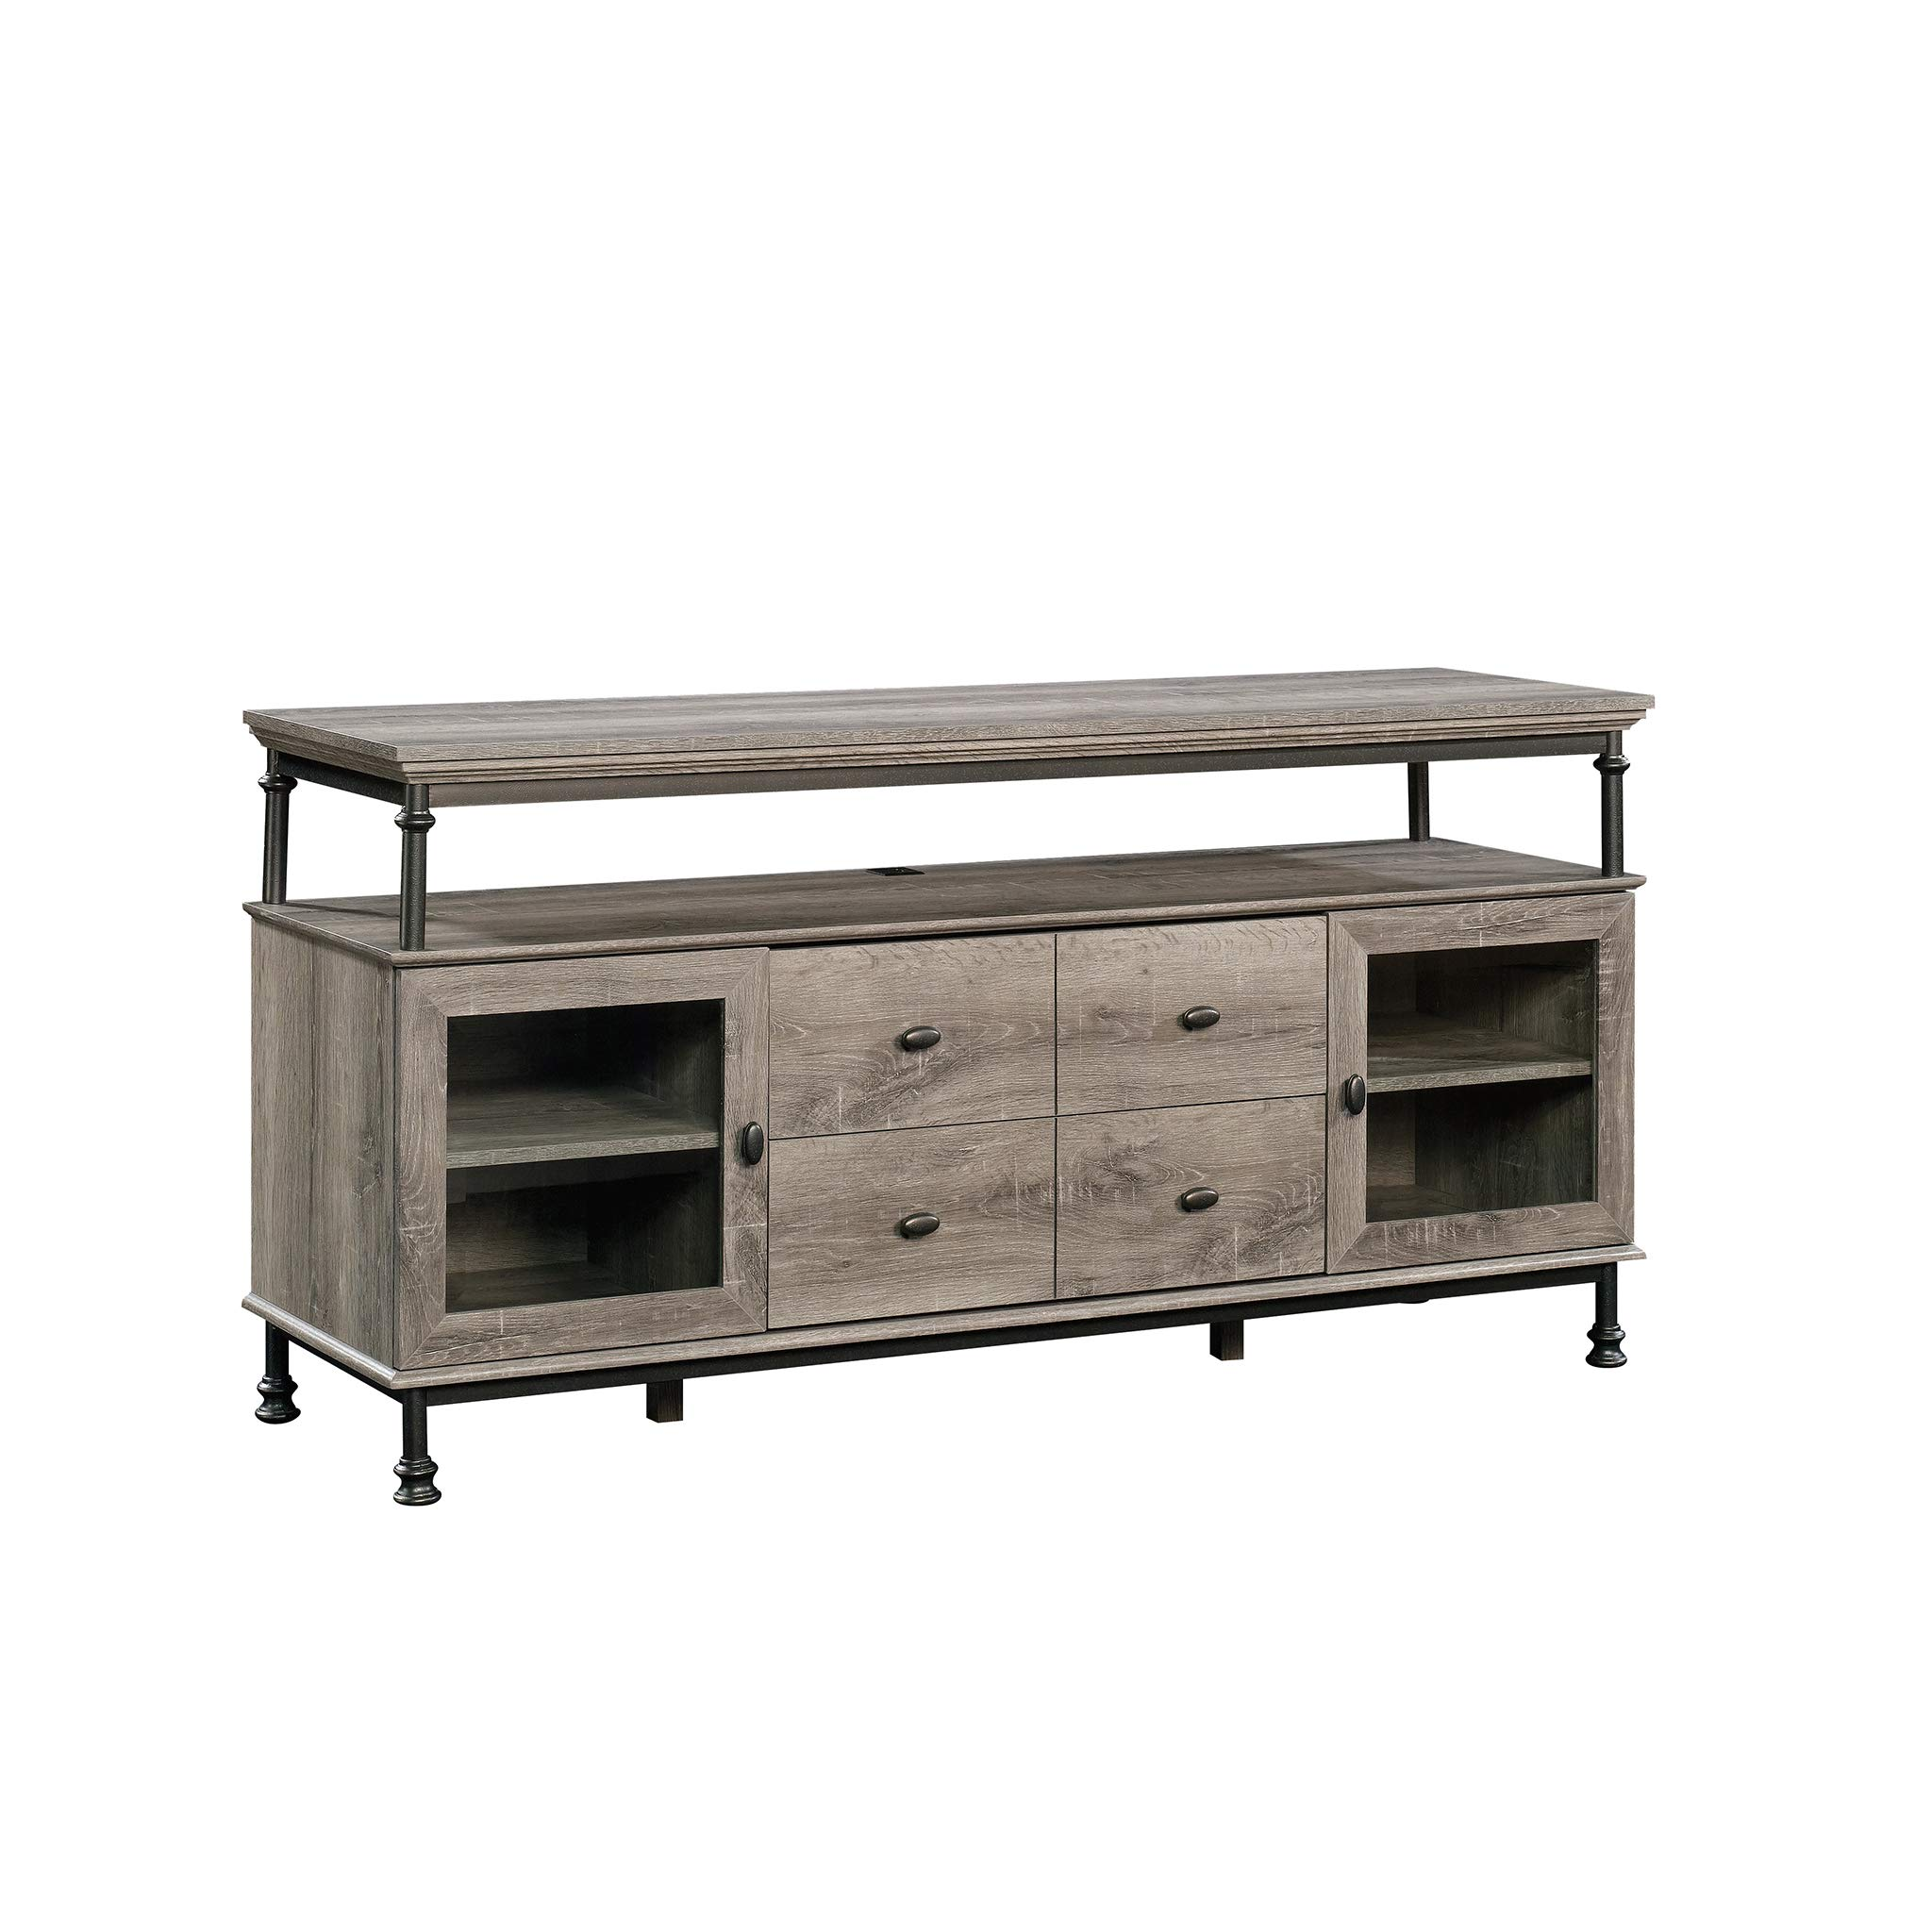 Sauder 420494 Canal Street Entertainment Credenza, For TV's up to 60'', Northern Oak Finish by Sauder